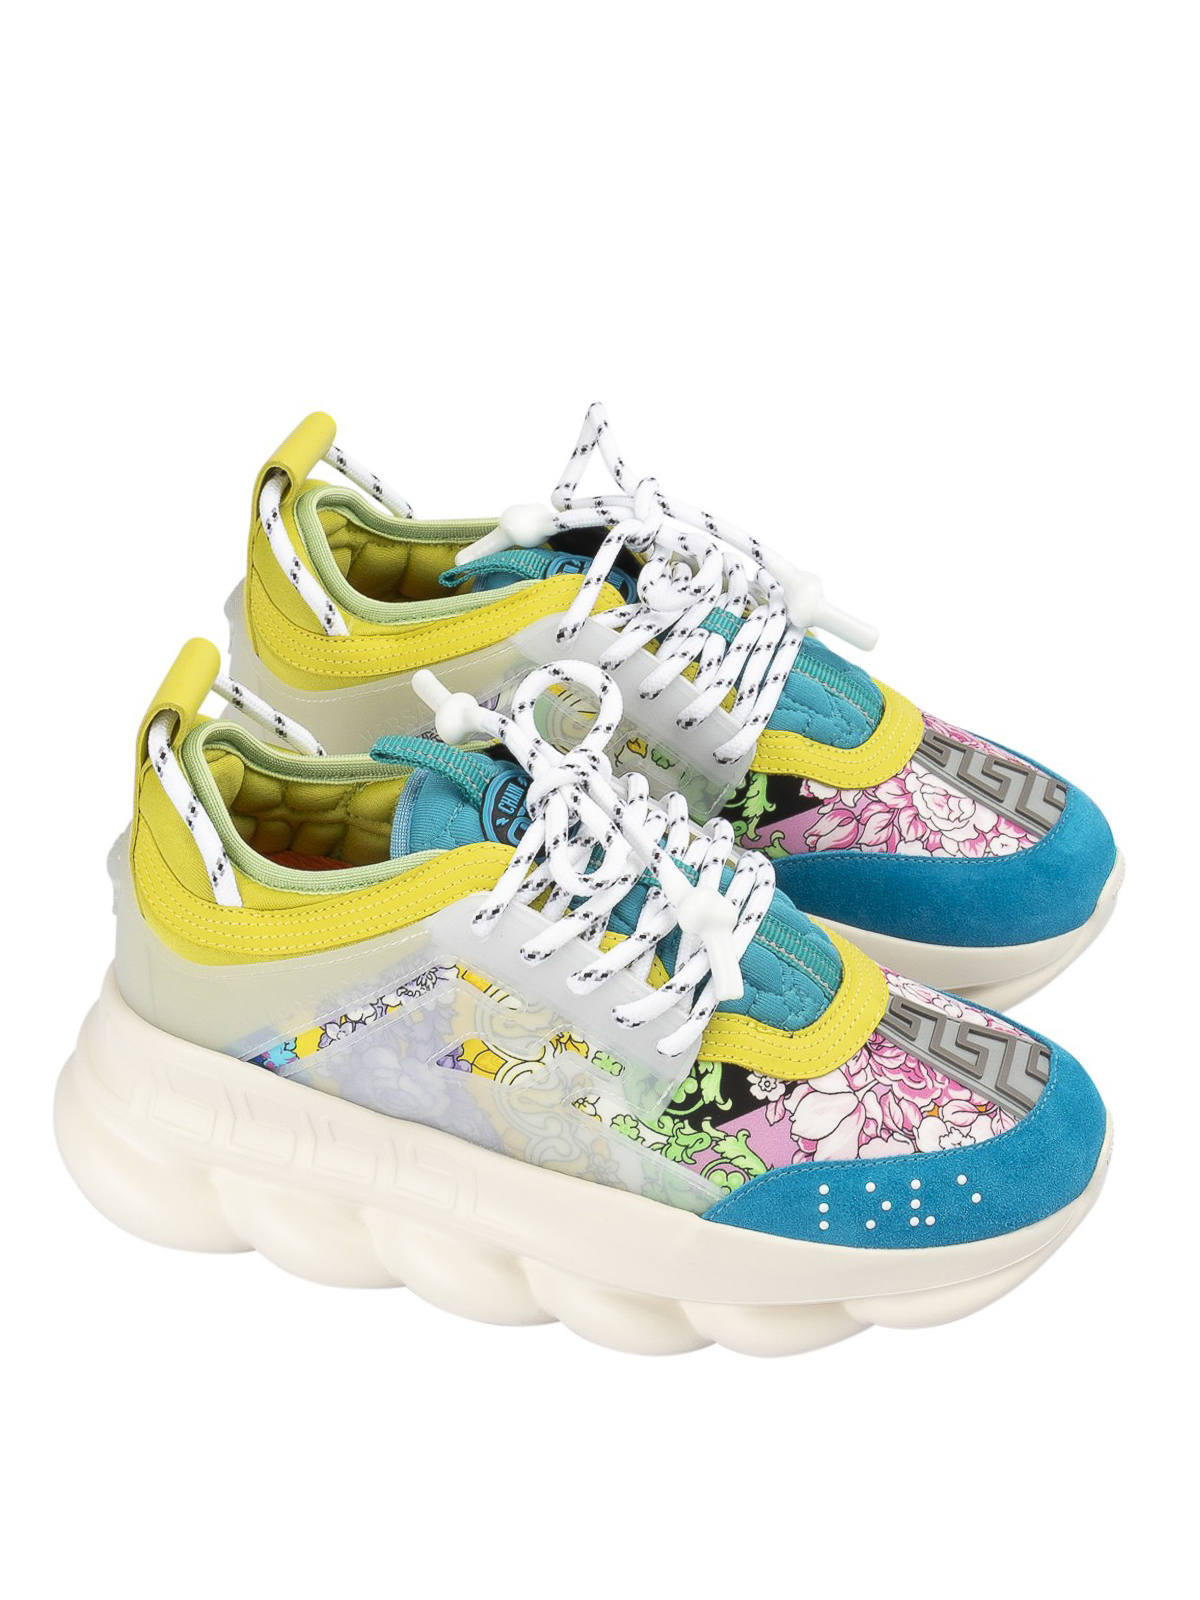 Chain Reaction floral sneakers